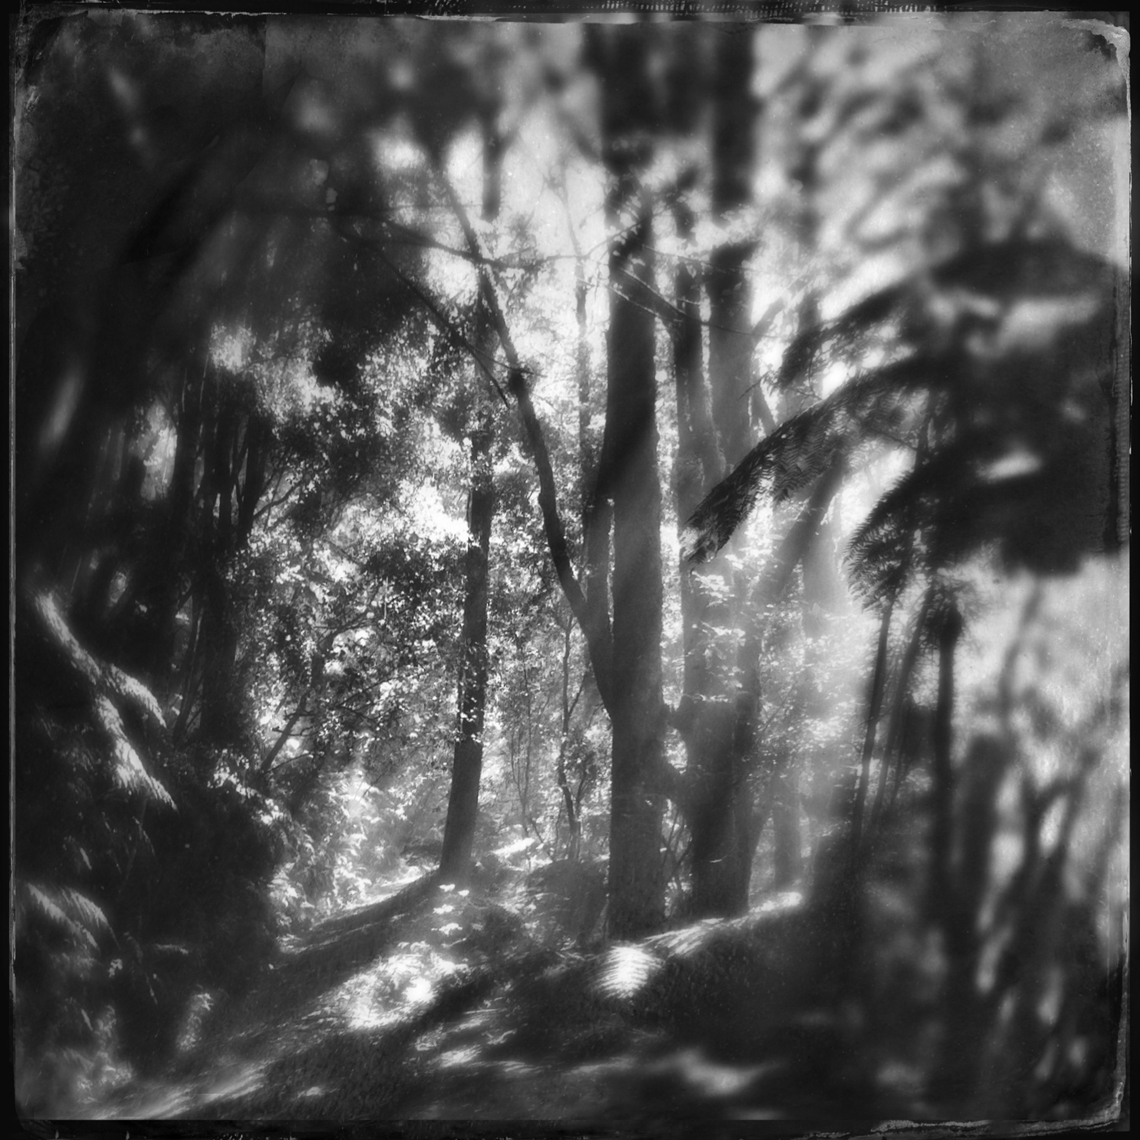 Jon Wyatt Photography - sunlight on forest path, New Zealand. Hipstamatic